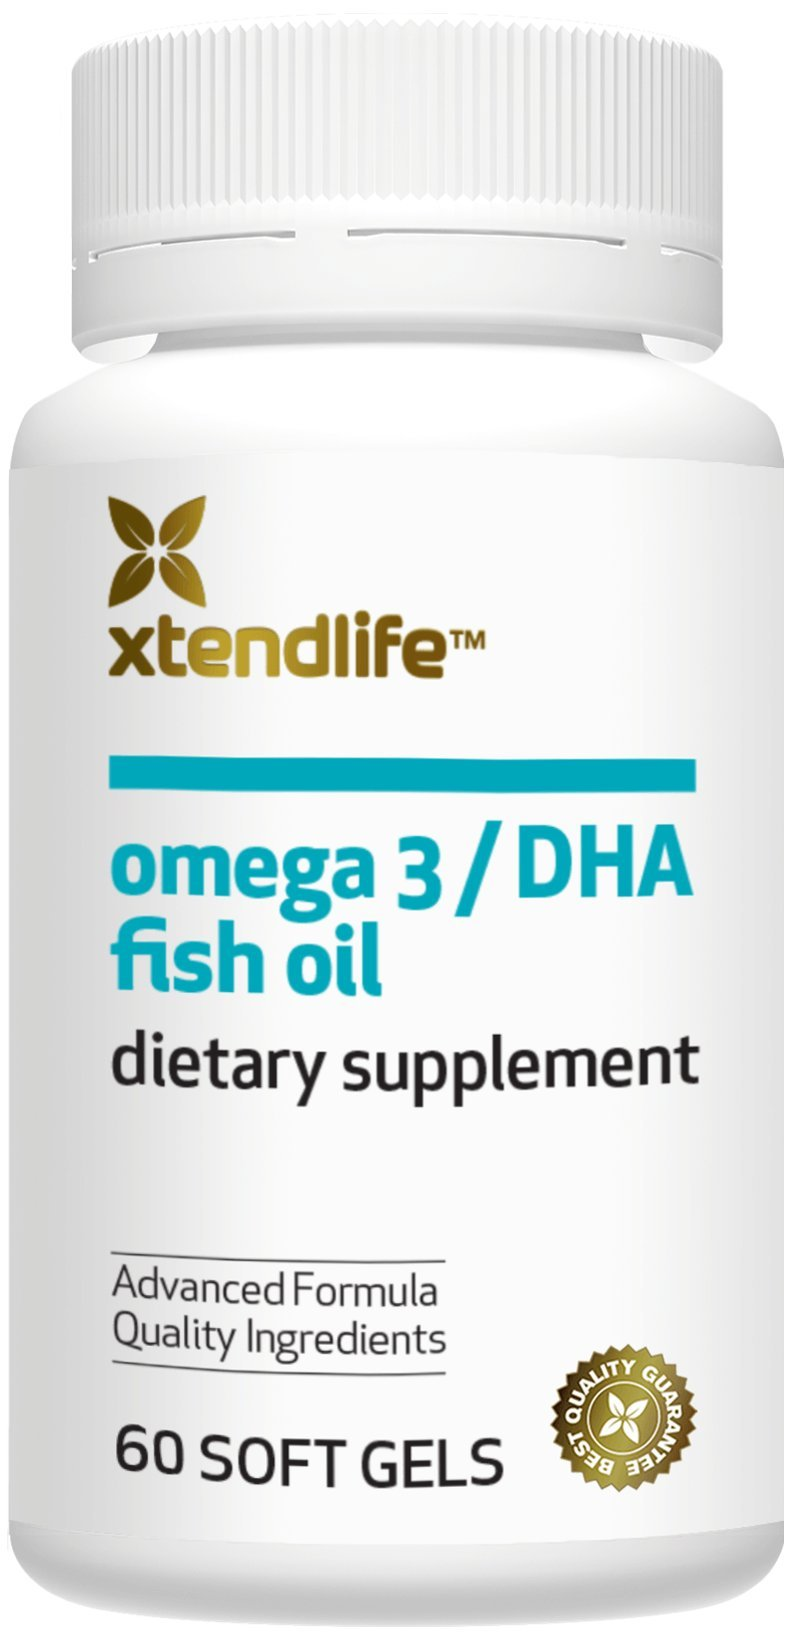 Xtend-Life Omega 3/DHA Fish Oil - 100% Pure Fishoil Natural Heart Brain & Joint Support Exclusive Advanced Formula w/Triglyceride - 700 mg per Day Strength Dietary Supplements - 60 Soft Gels